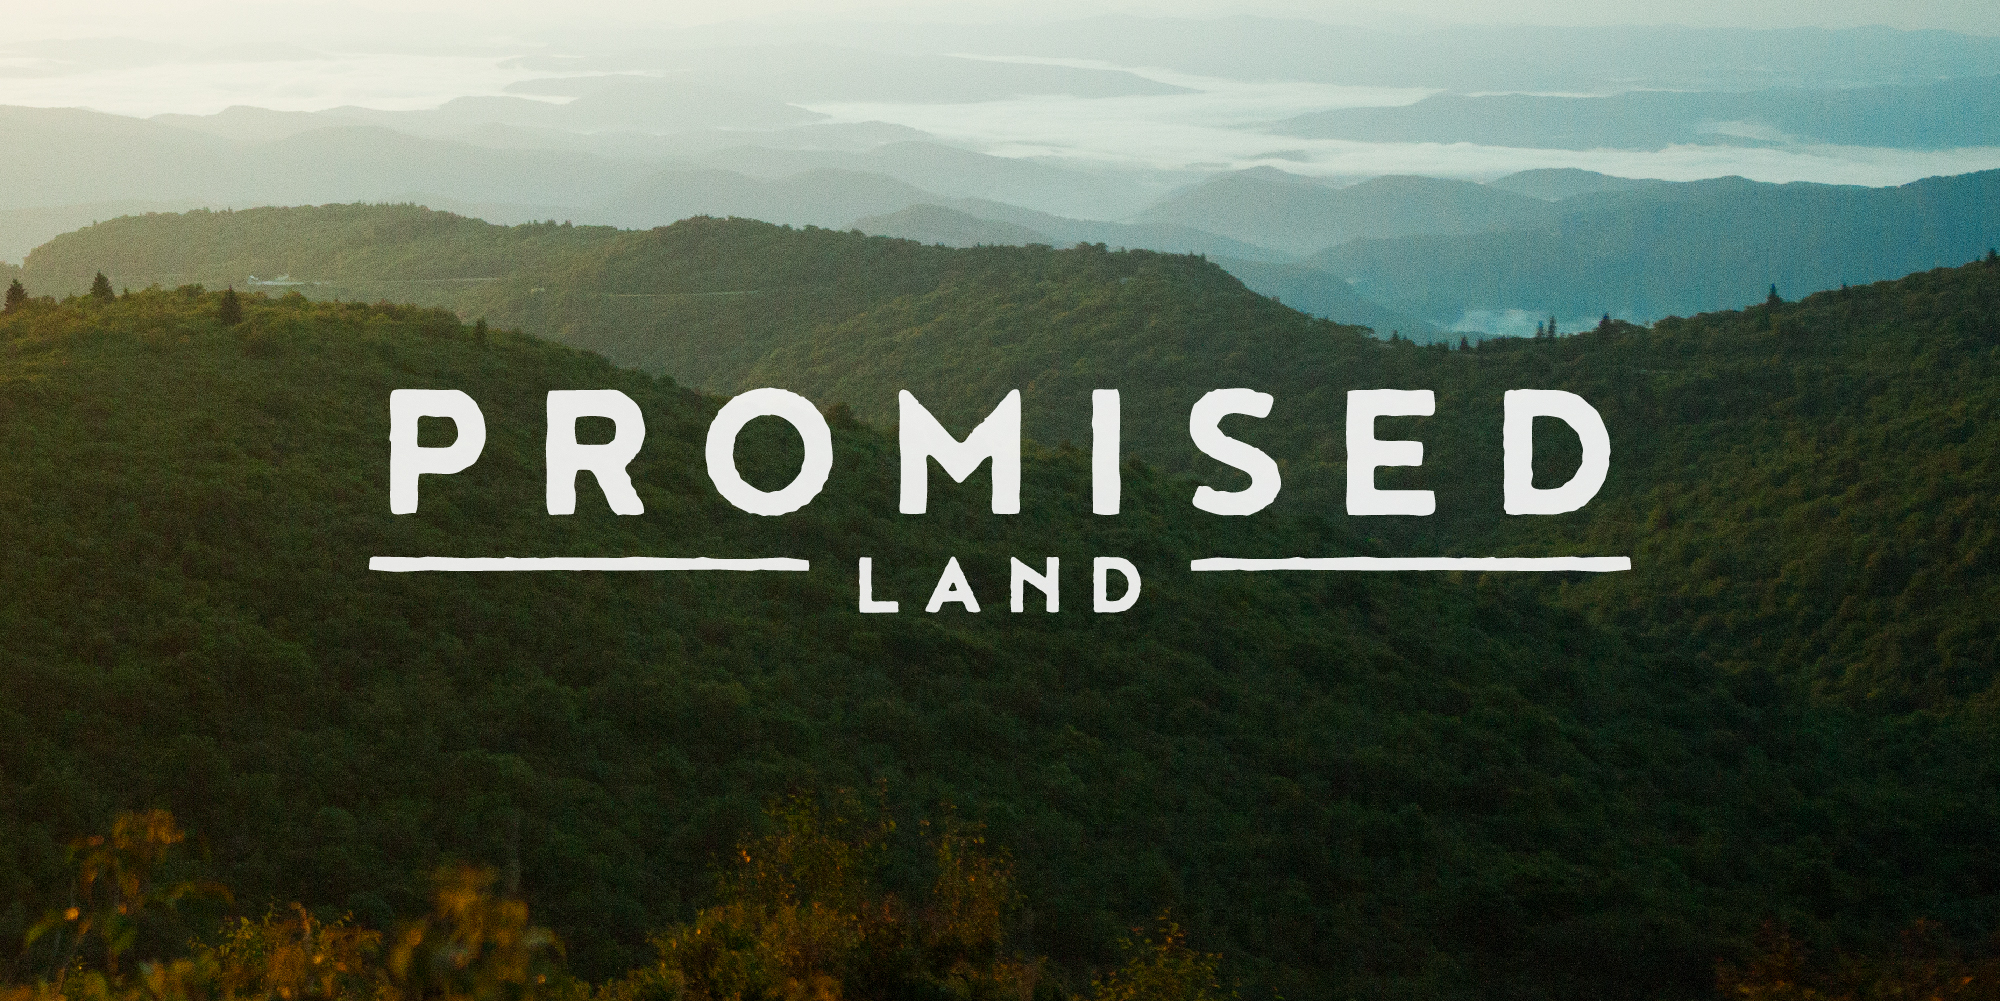 Promised Land  by Phil Hoover